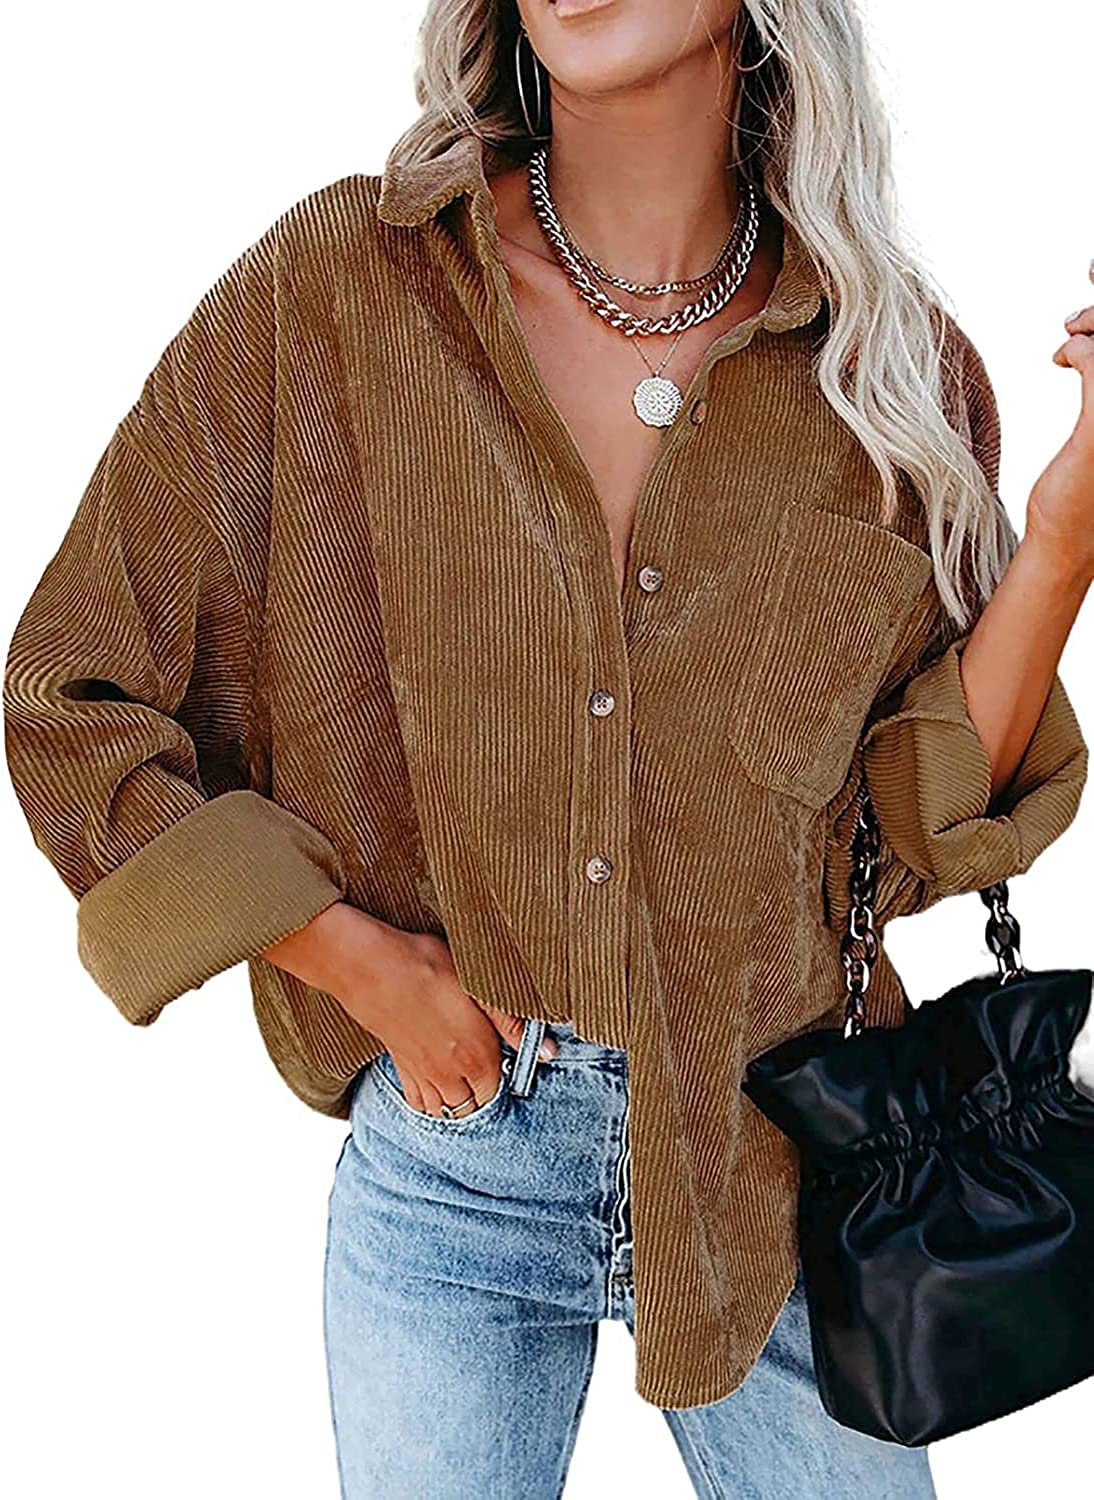 HIZZOA Womens Corduroy Button Down Shirt Oversized Blouses Tops Long Sleeve Casual Warm Jacket with Pockets